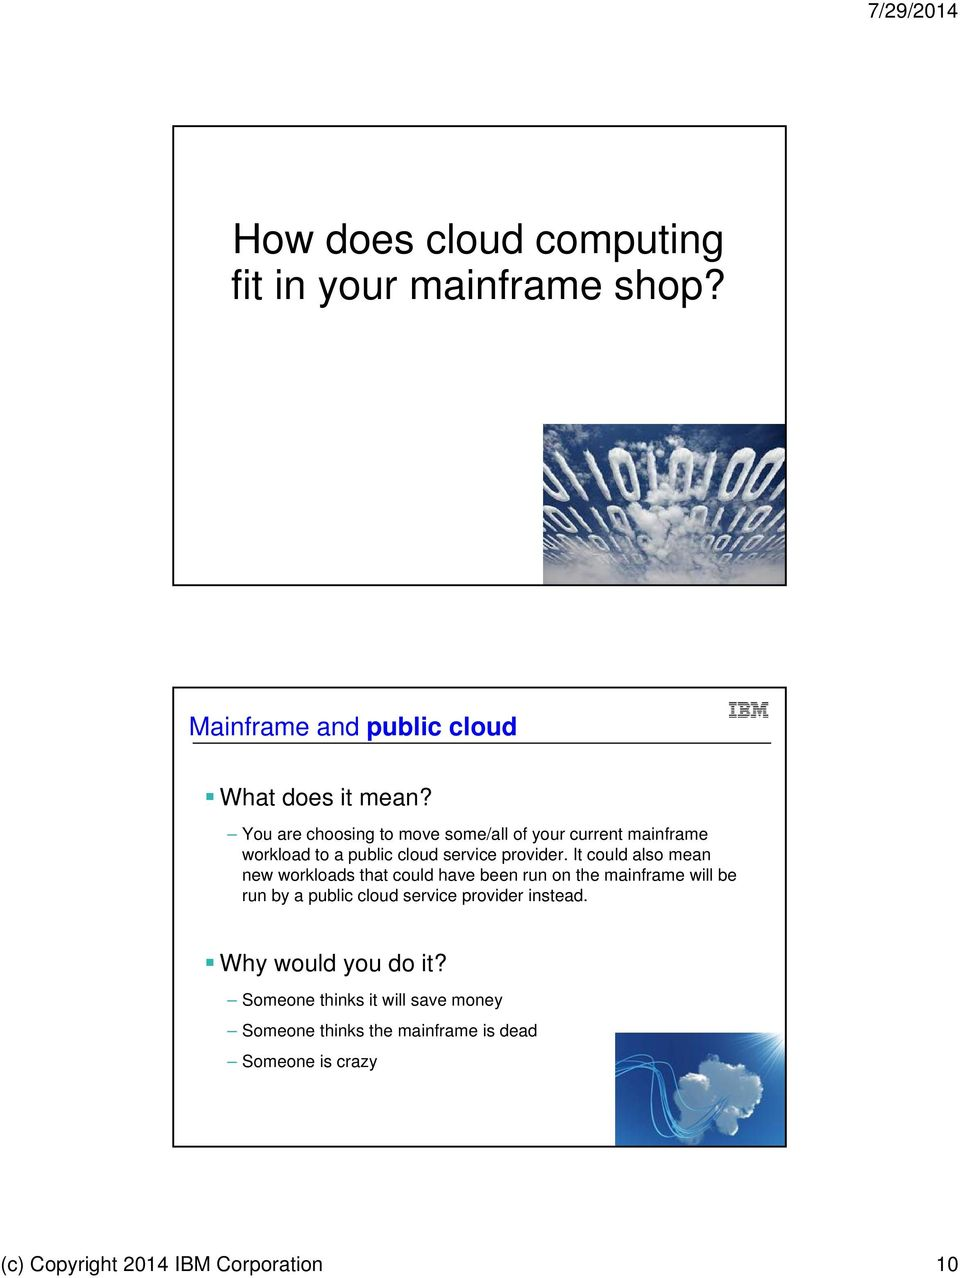 It could also mean new workloads that could have been run on the mainframe will be run by a public cloud service